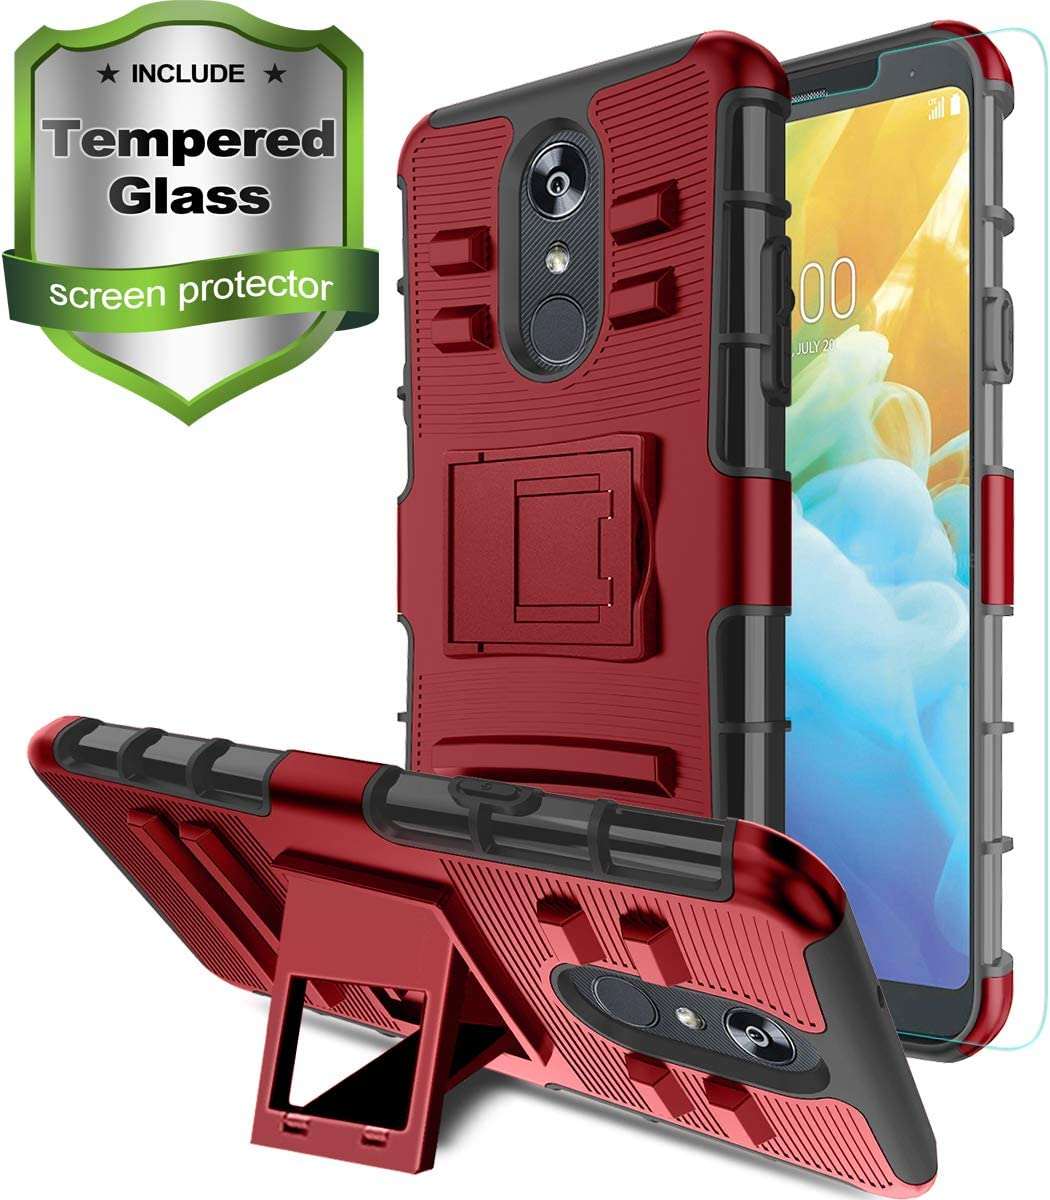 Aetech for LG Stylo 4 Phone Case / Stylo 4 Plus Case with Tempered Glass Protector Screen Kickstand Stand Cover Heavy Duty Durable for Women / Men, PC Red